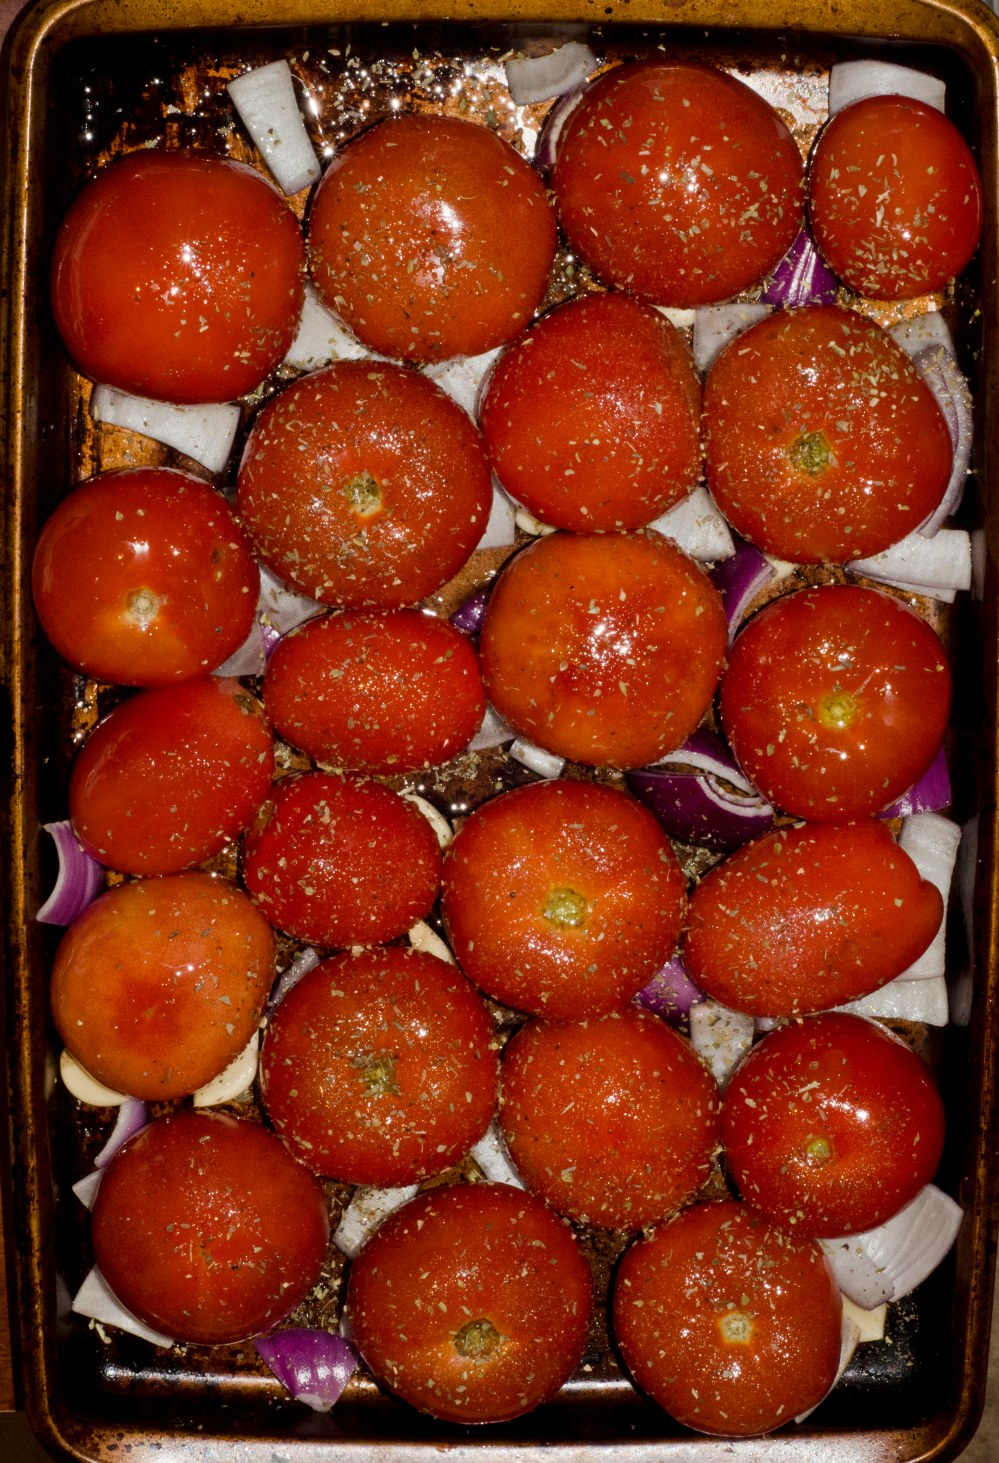 Roasted_tomatoes_1.jpg